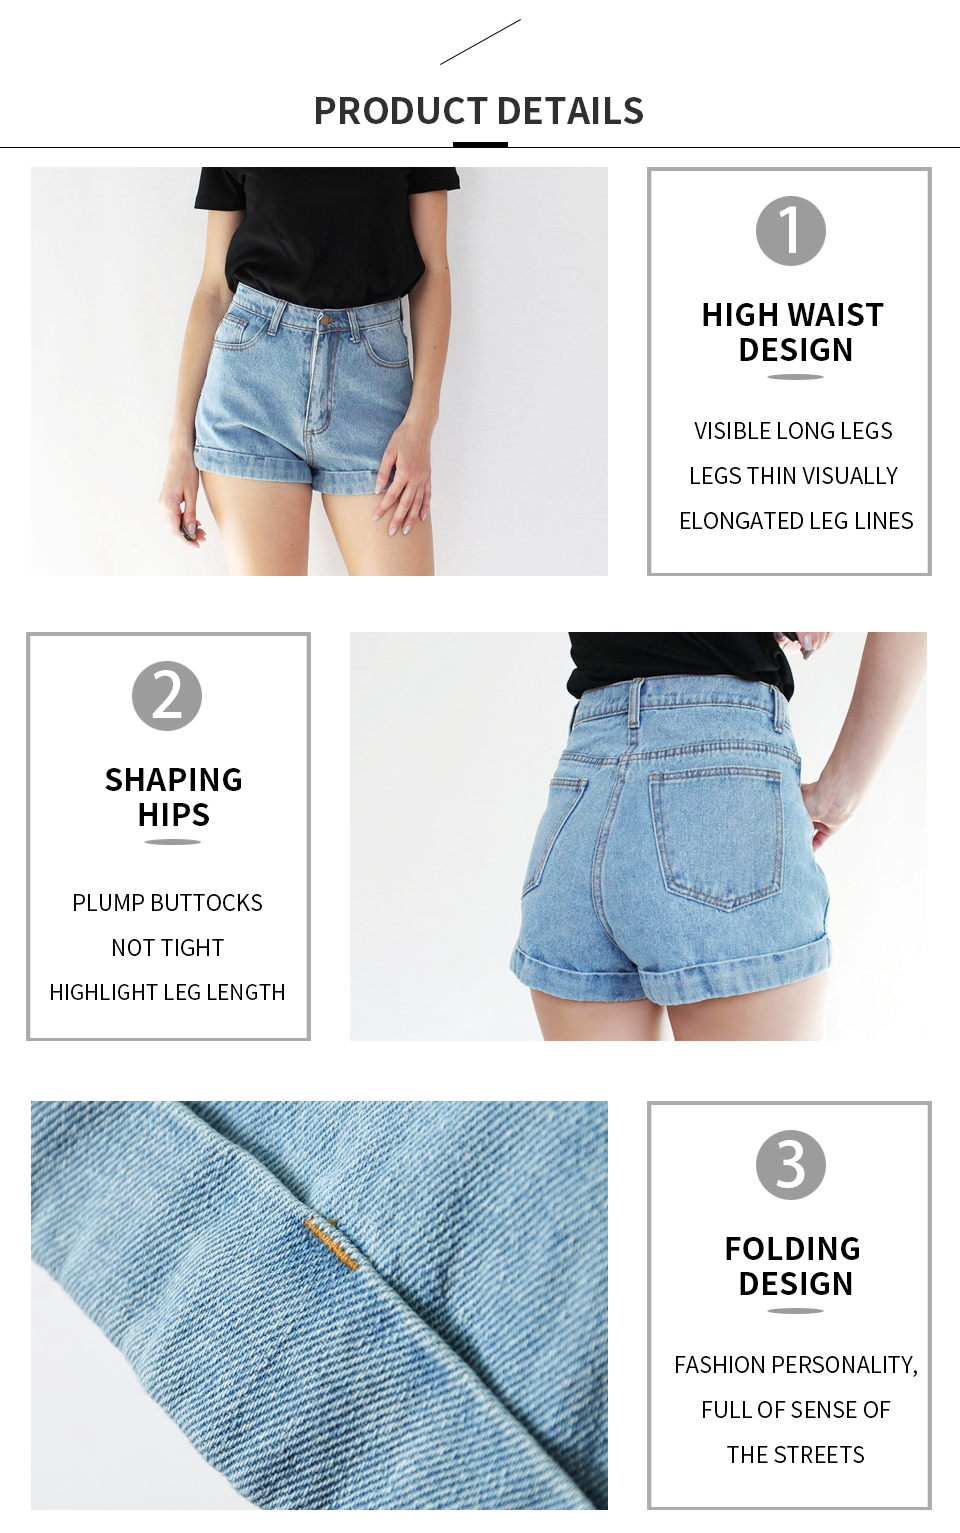 HTB1sSqqiVooBKNjSZPhq6A2CXXaM - GOPLUS High Waist Denim Shorts for Women Vintage Sexy Brand Shorts Jeans Women Denim Shorts Feminino Slim Hip Plus Size C3627